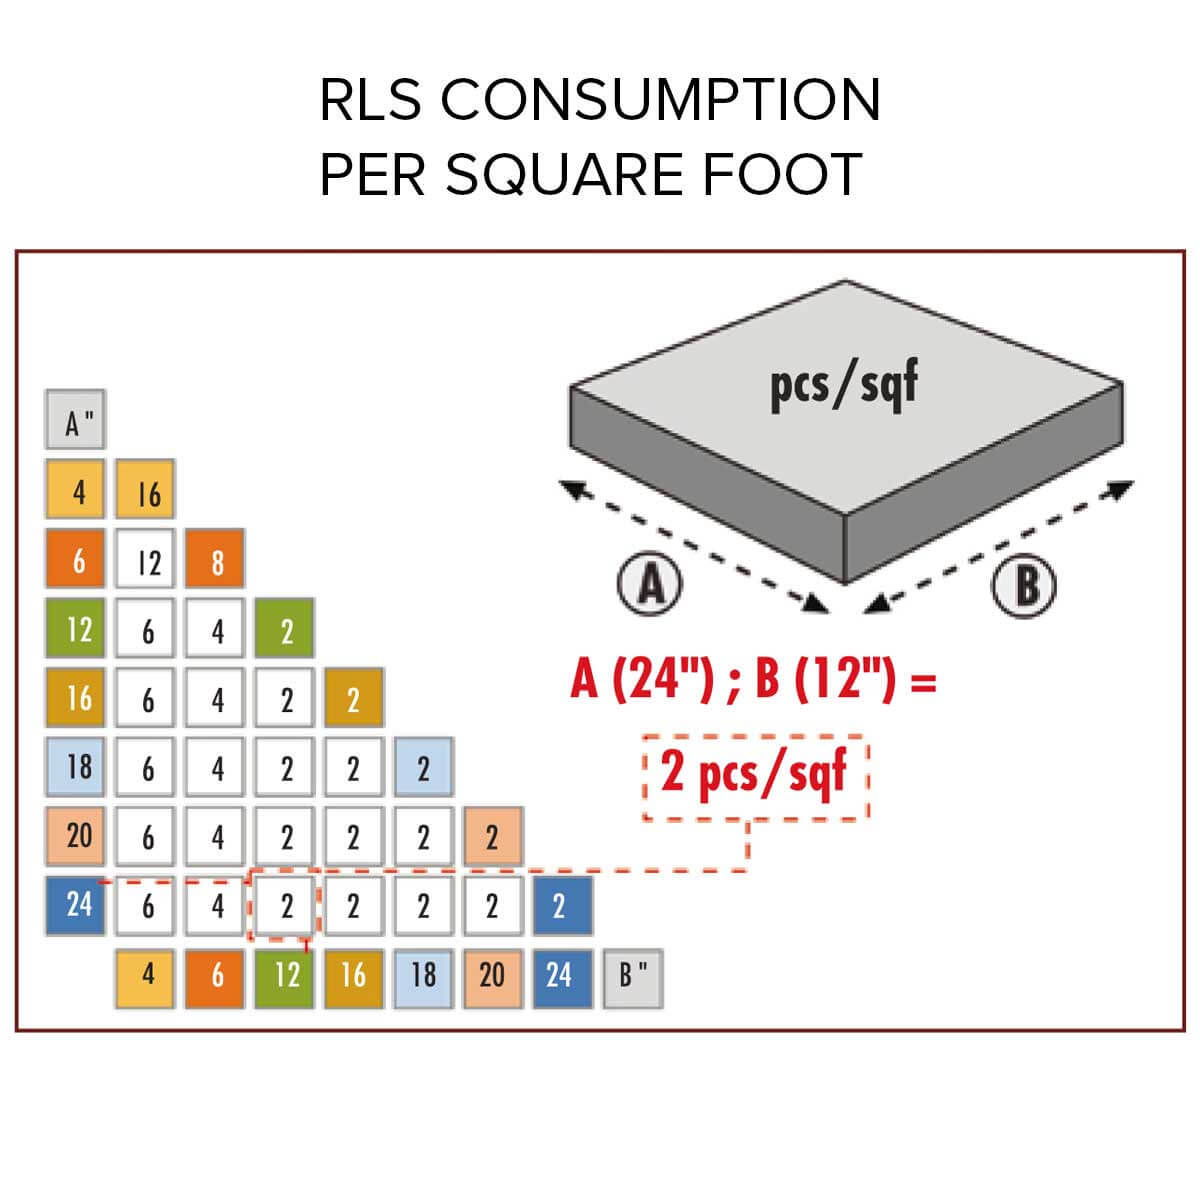 RLS consumption per sq ft